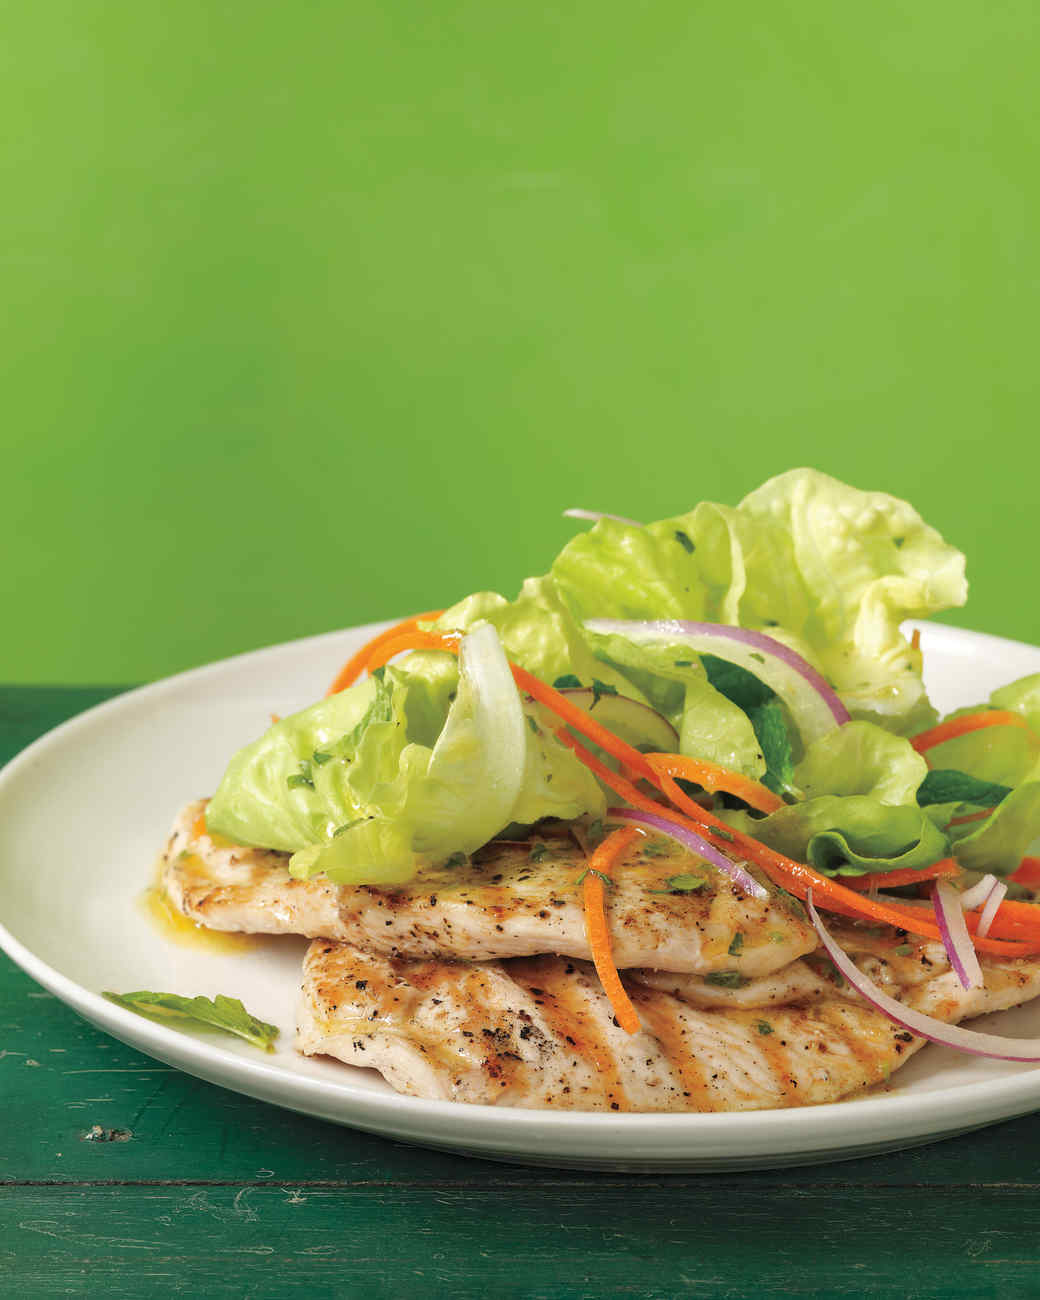 grilled-chicken-paillards-med108164.jpg